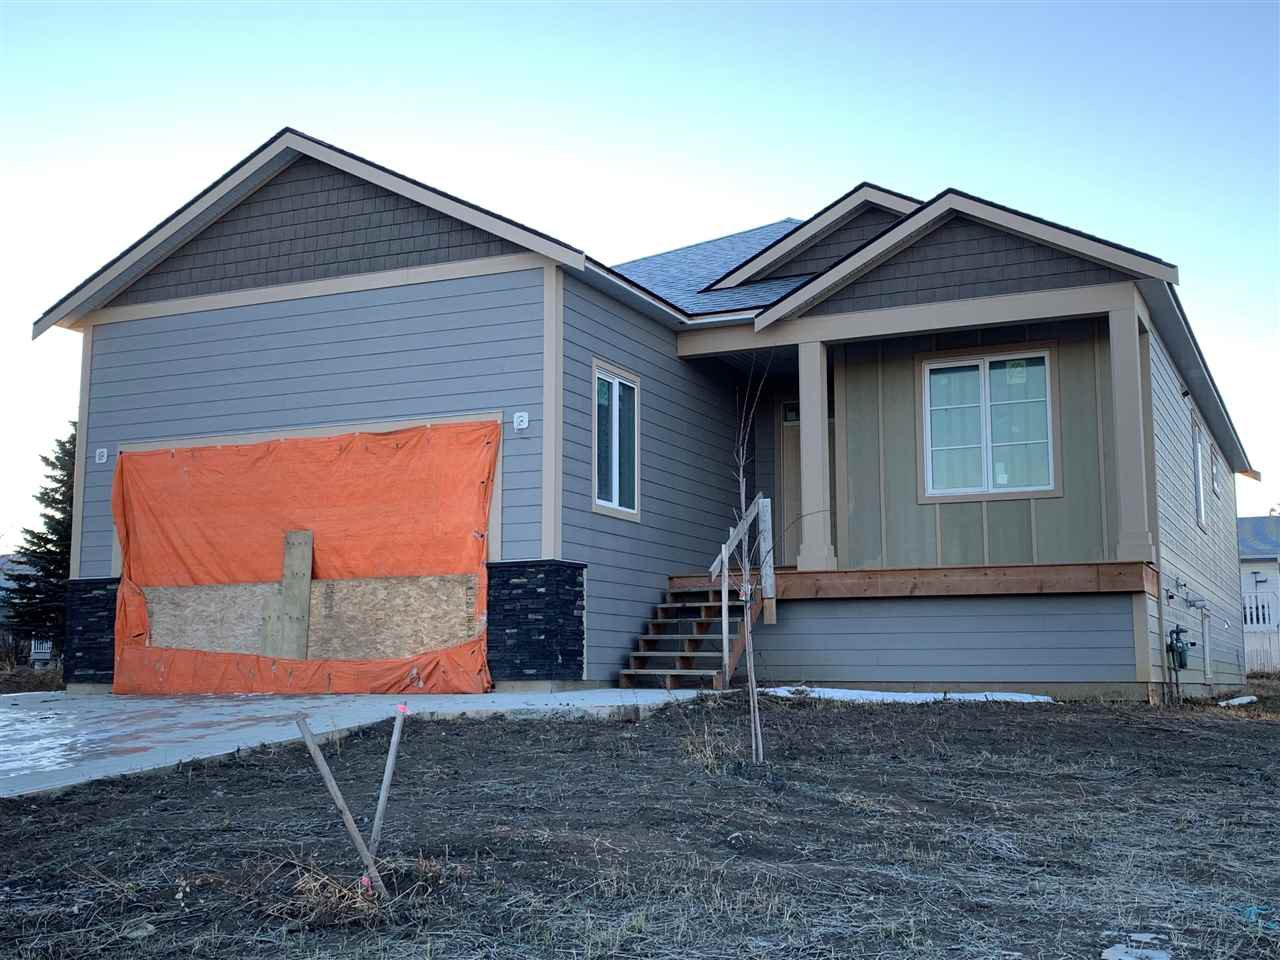 Main Photo: 10715 114A Avenue in Fort St. John: Fort St. John - City NW House for sale (Fort St. John (Zone 60))  : MLS®# R2523082